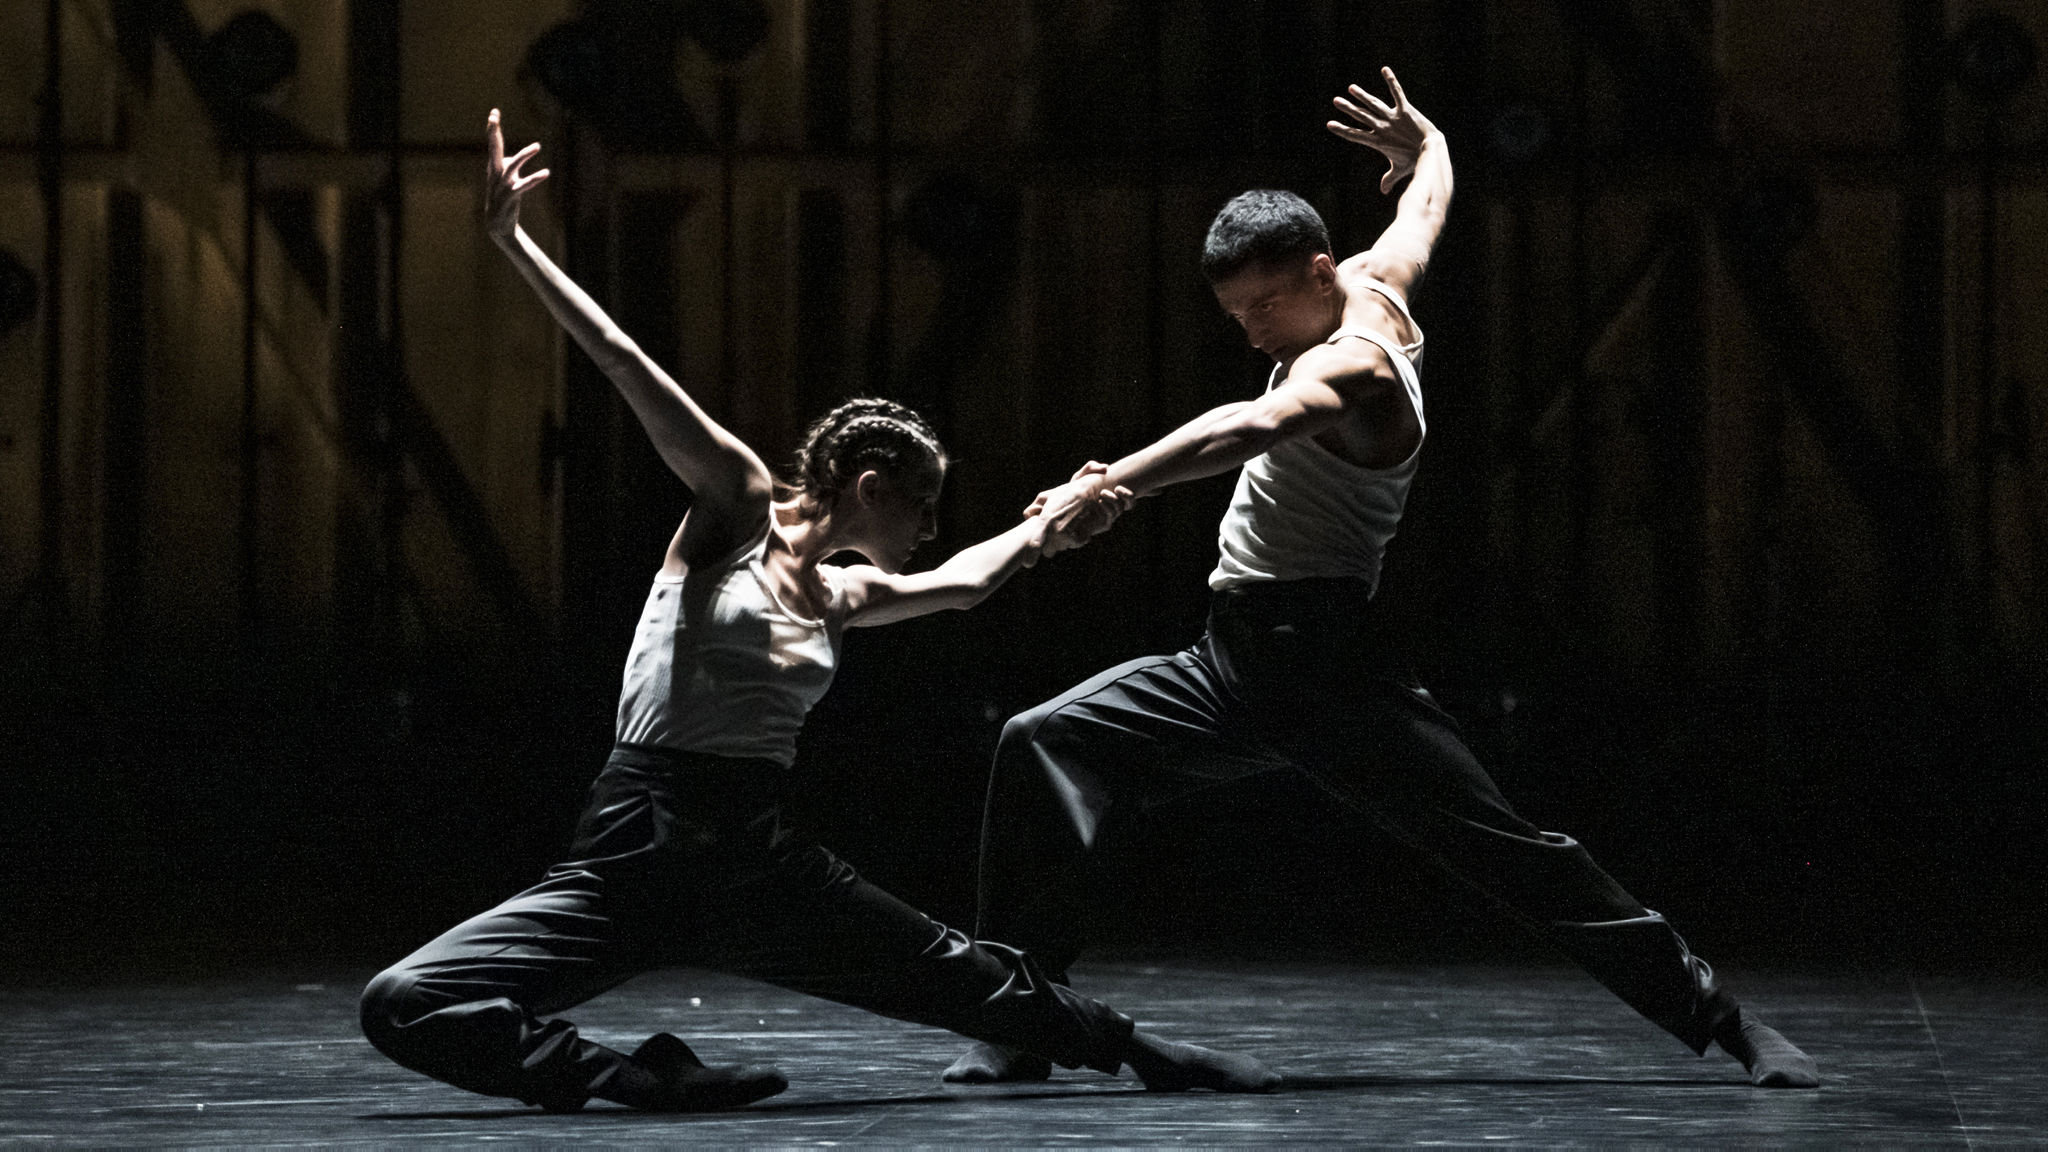 Crystal Pite's ambitious new work is premiered at the Palais Garnier, Paris